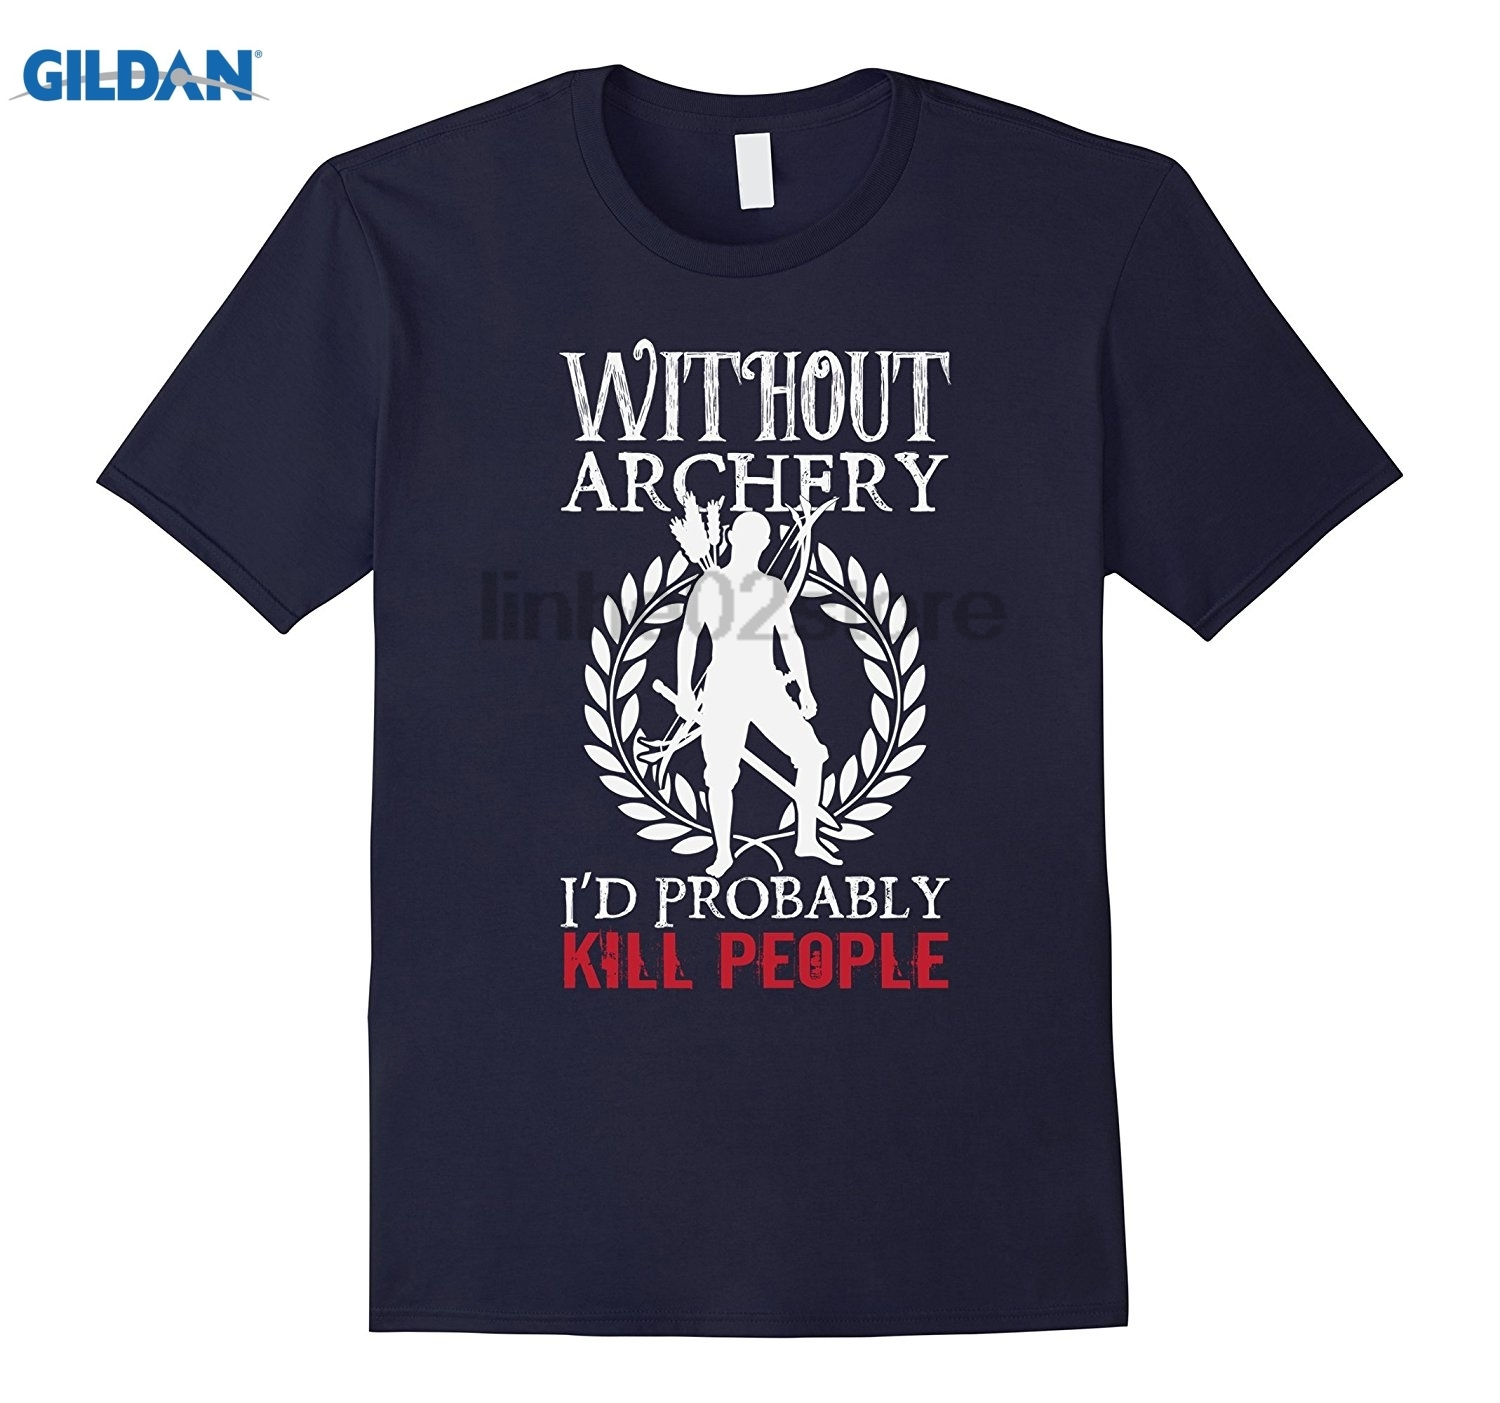 GILDAN Without Archery I'd Probably Kill People Bow And Arrow Shirt